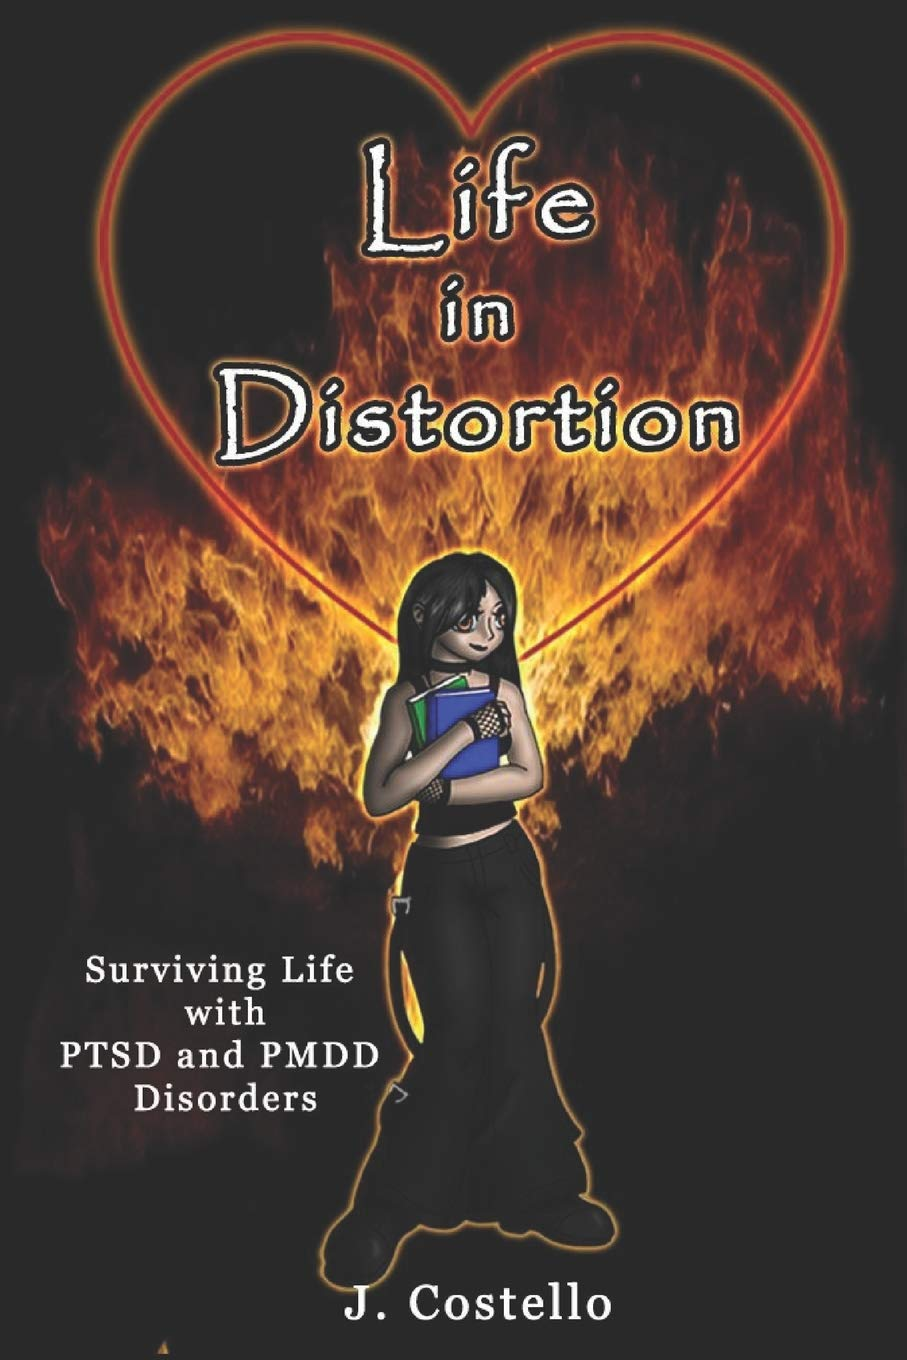 Life in Distortion: Surviving life with PTSD and PMDD disorders: J  Costello: 9781519024459: Books - Amazon.ca